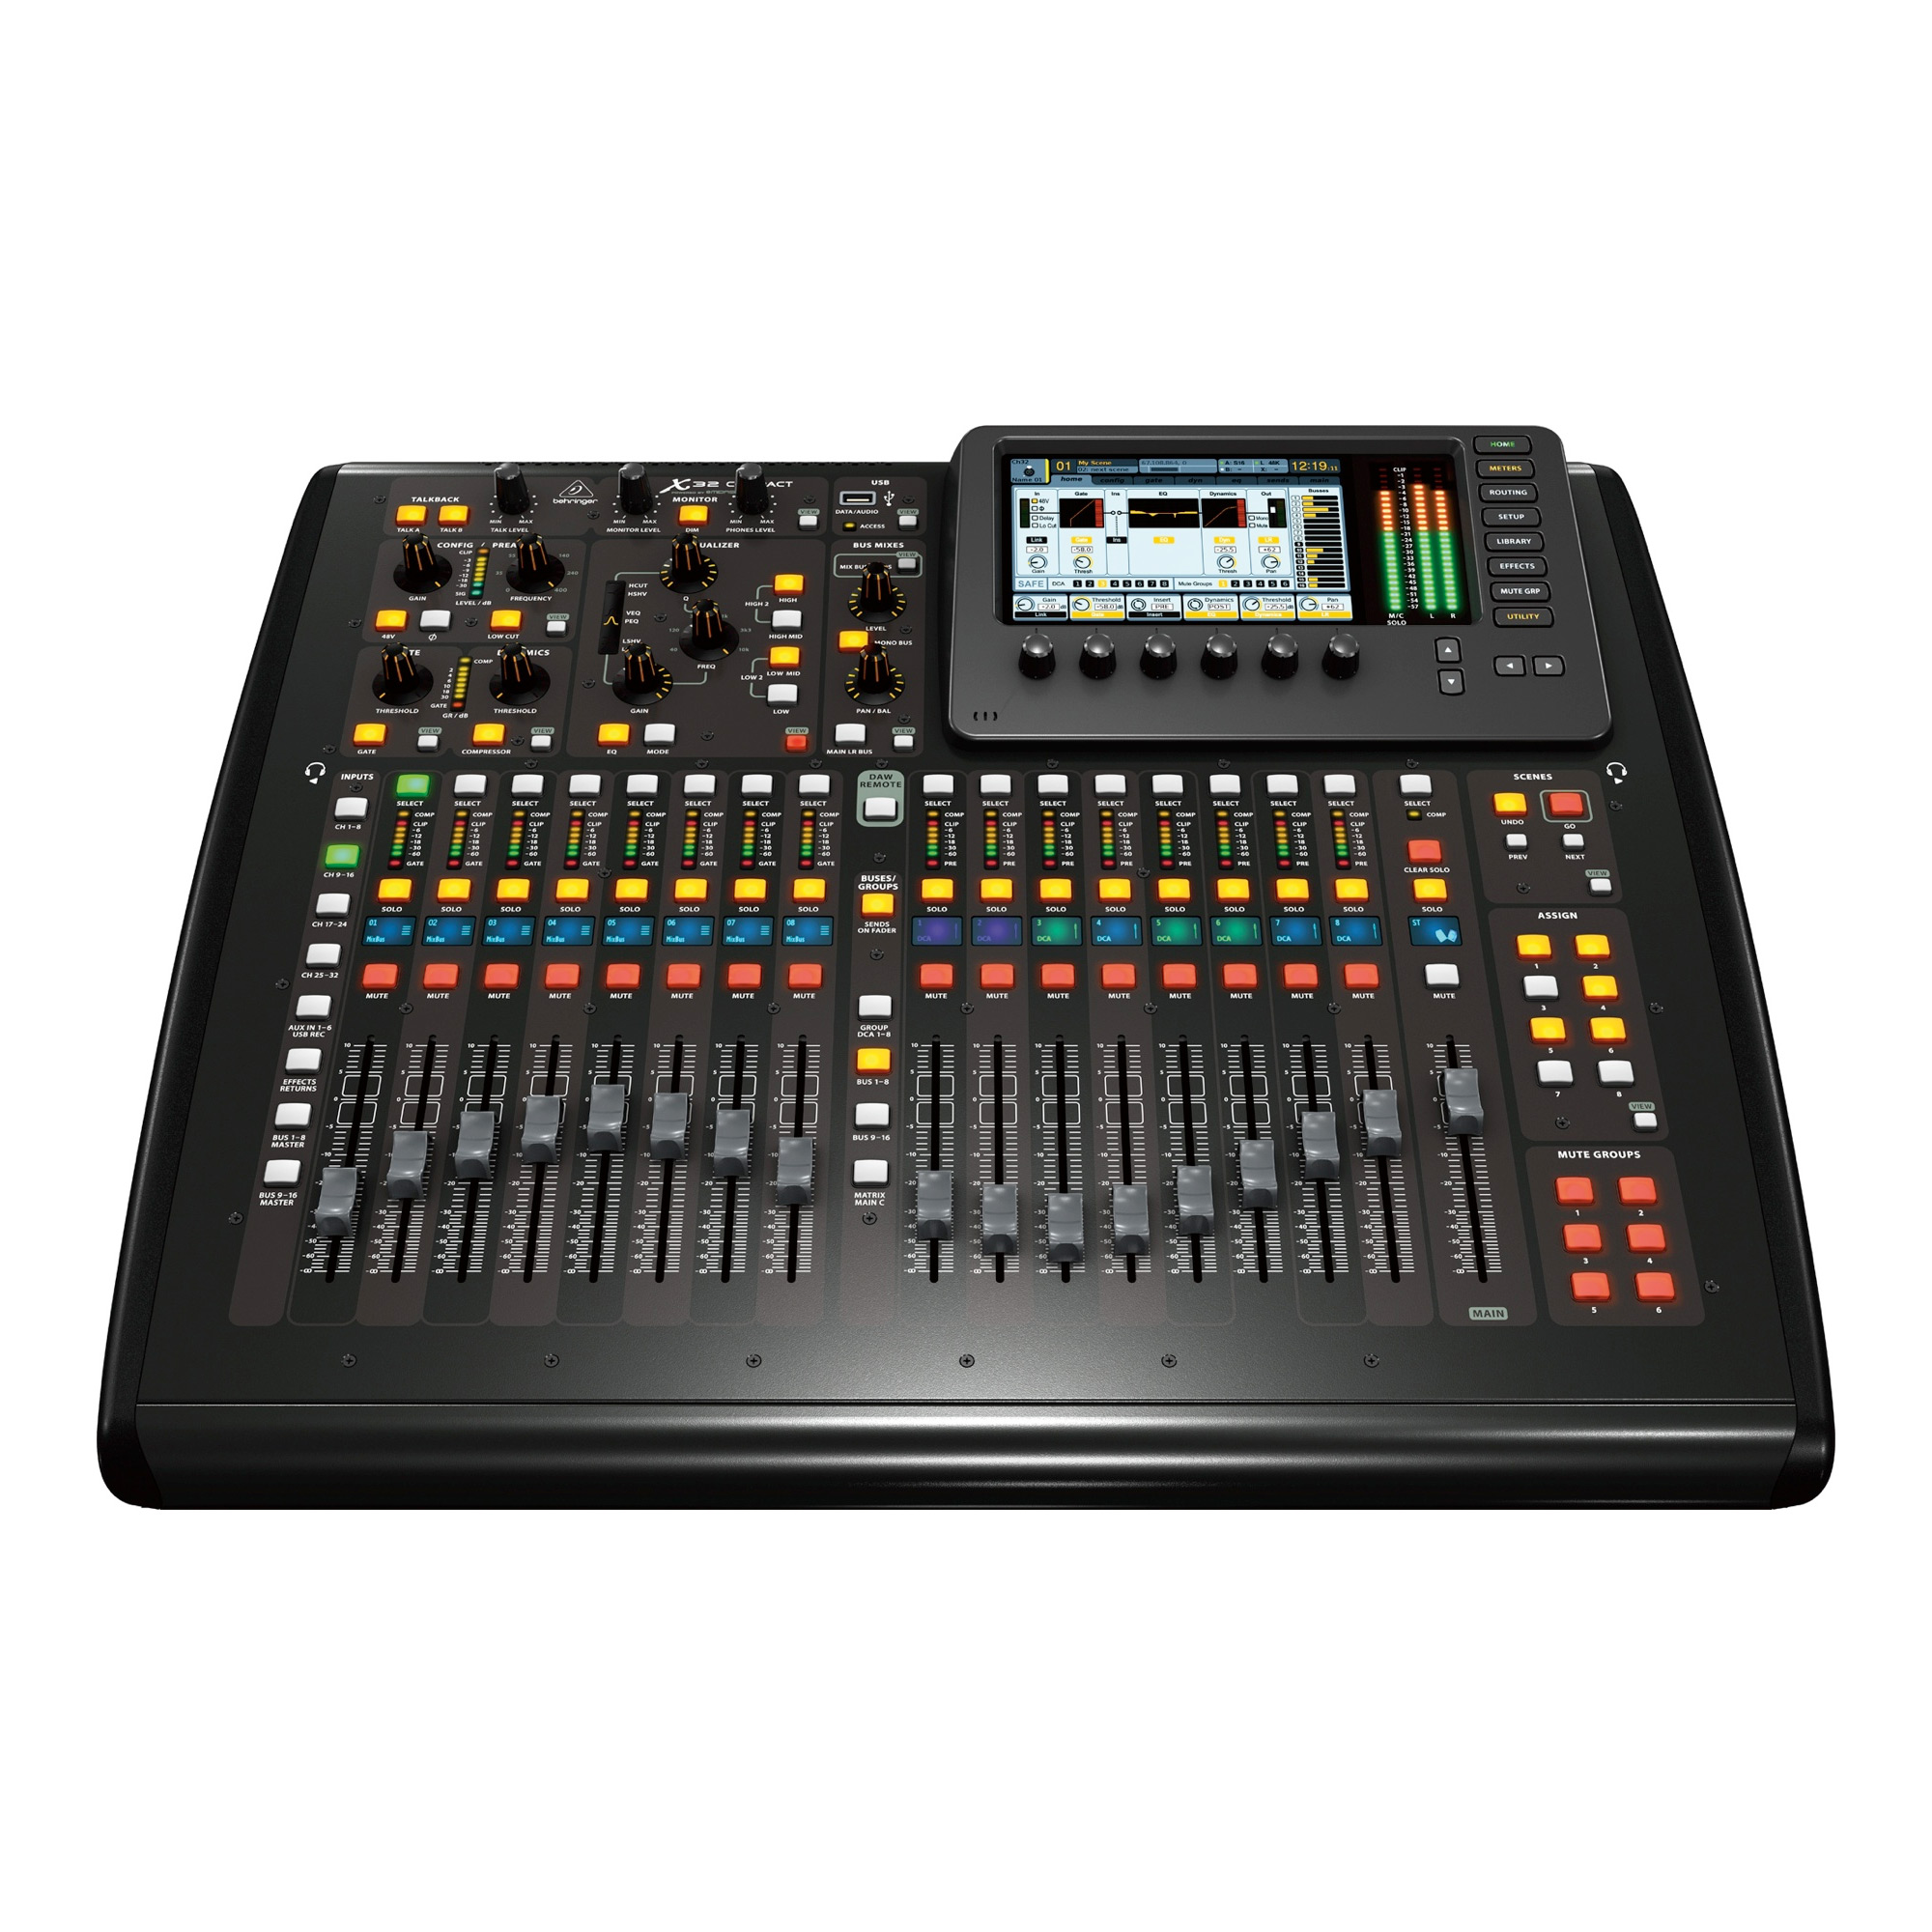 behringer x32 compact tp 40 input 25 bus digital mixing console w touring case 6968590543588 ebay. Black Bedroom Furniture Sets. Home Design Ideas